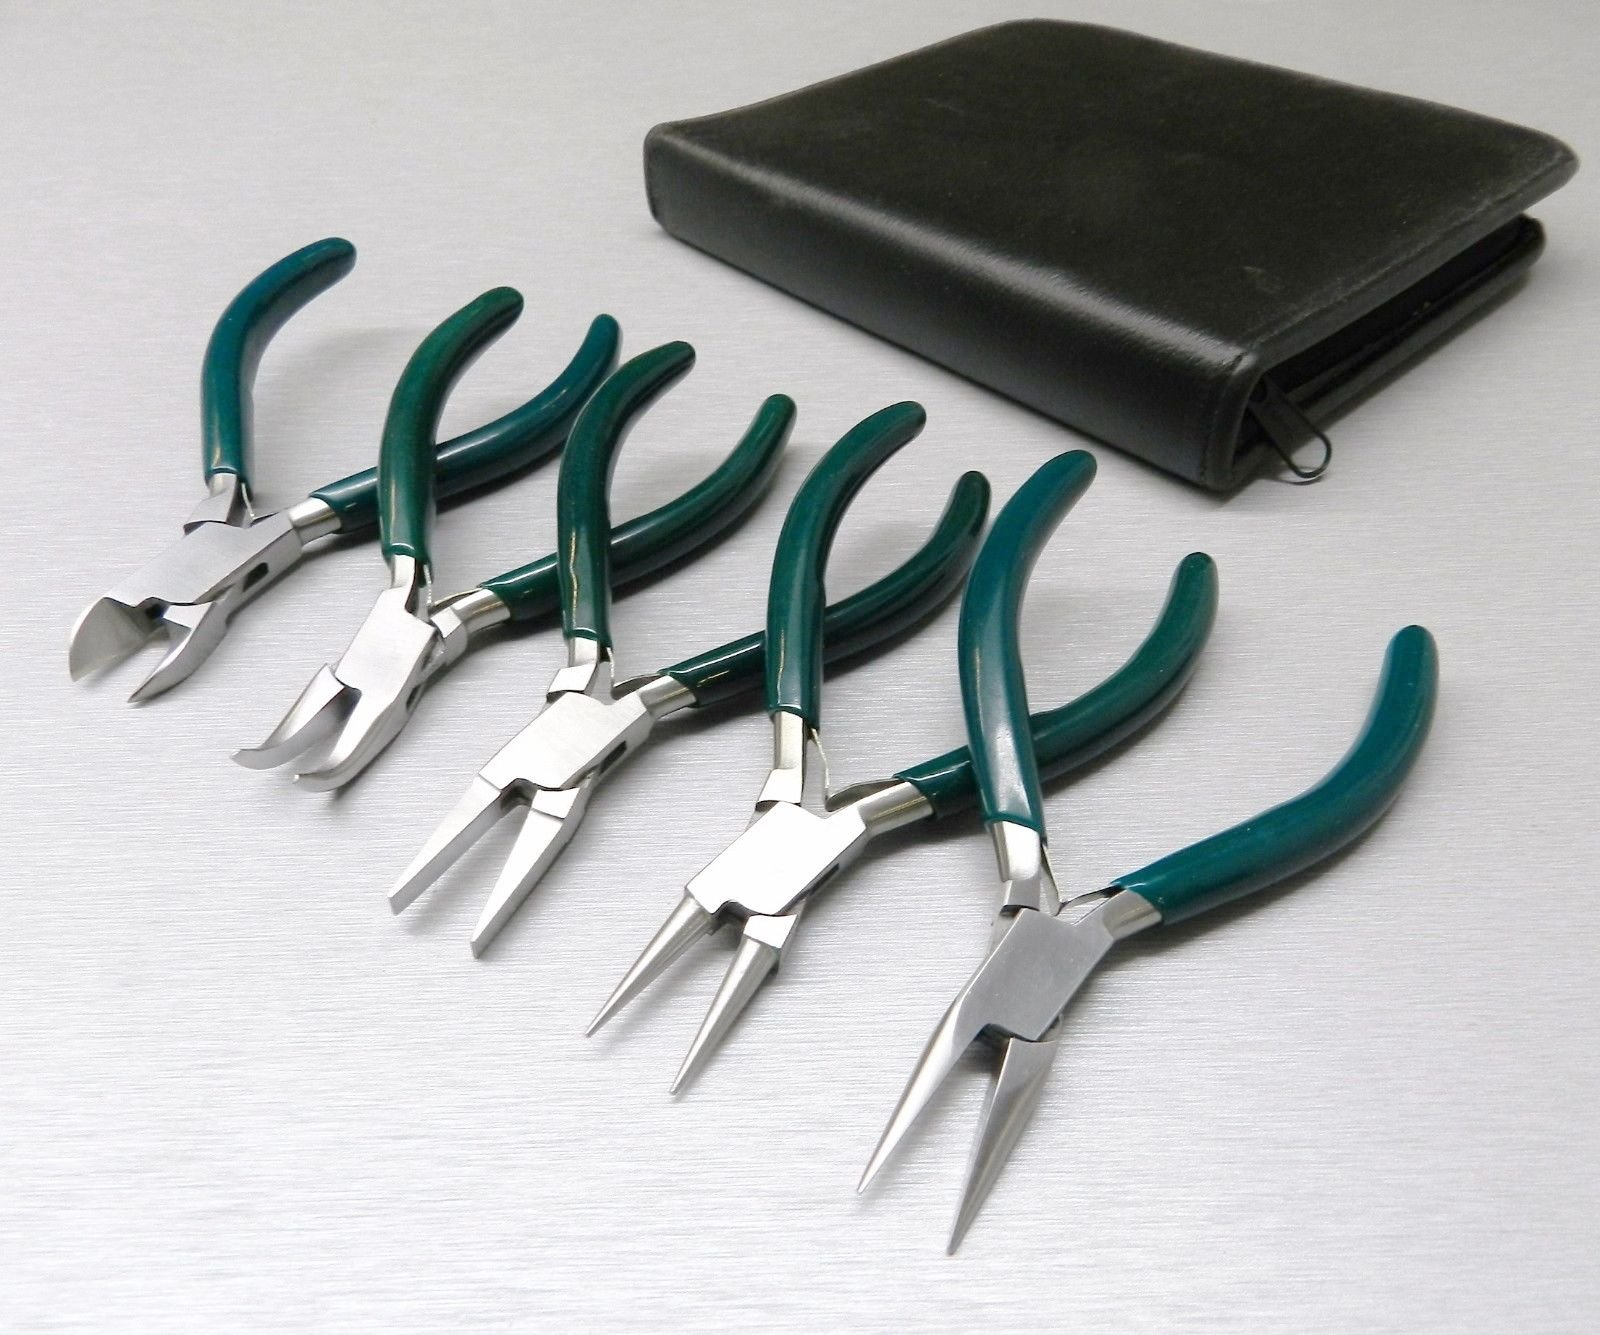 5 Pc JEWELERS PLIERS SET JEWELRY MAKING BEADING WIRE WRAPPING HOBBY 5'' PLIER KIT (LZ 1.5 FRE)